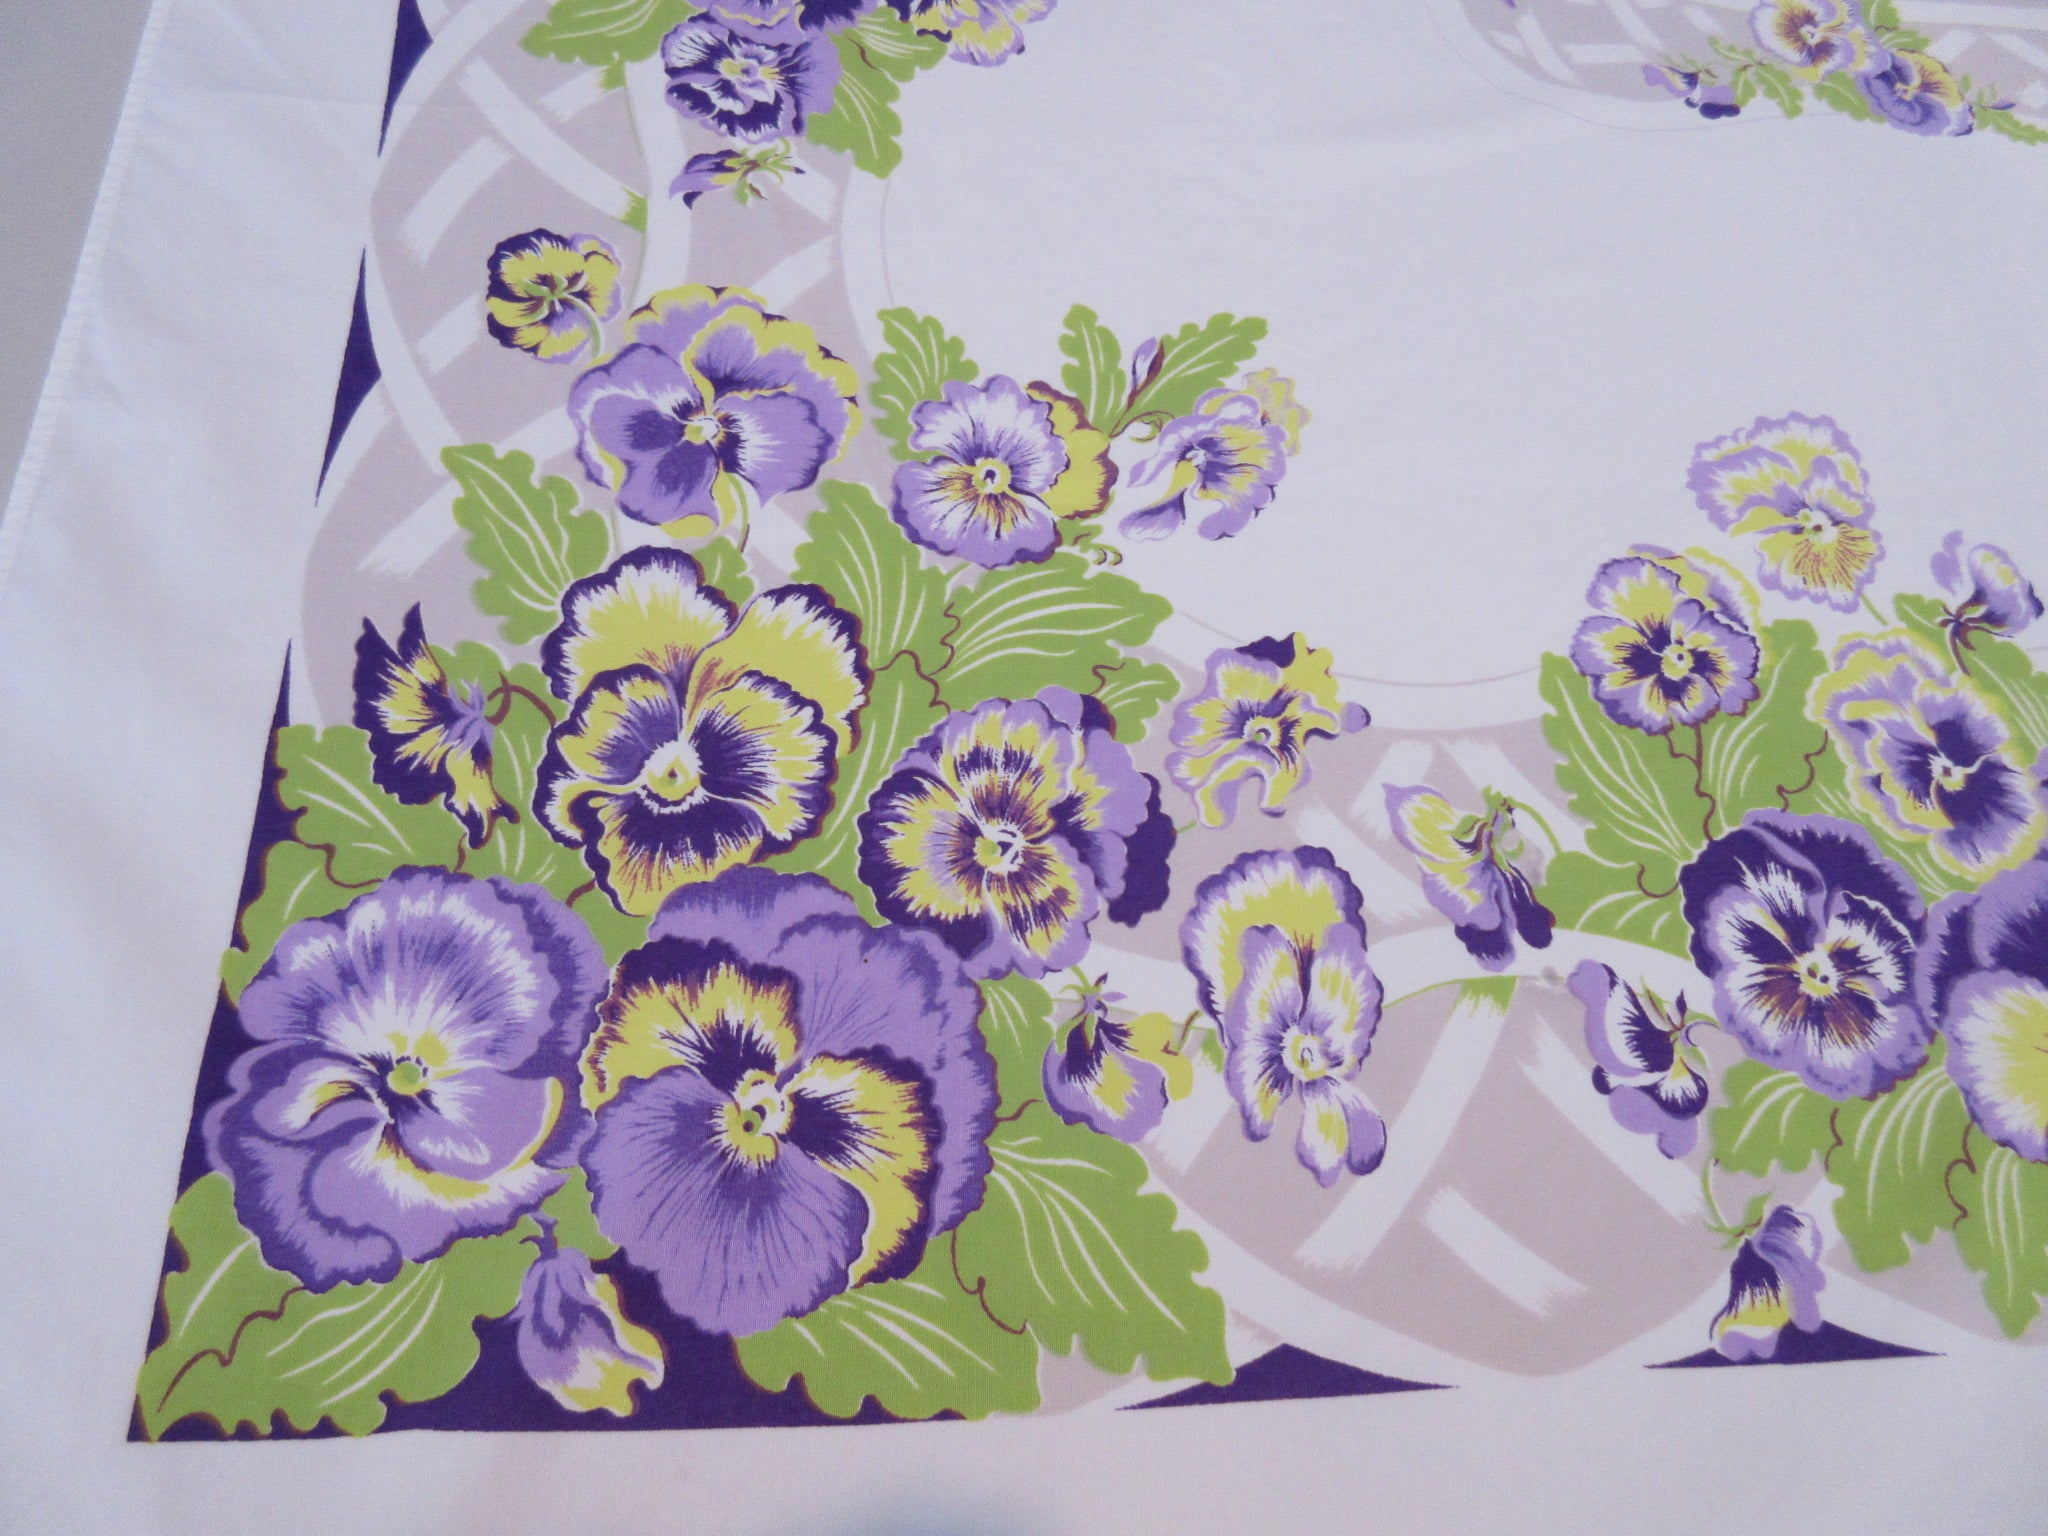 CHP Purple Pansies Tan Basketweave Floral Vintage Printed Tablecloth (64 X 52)